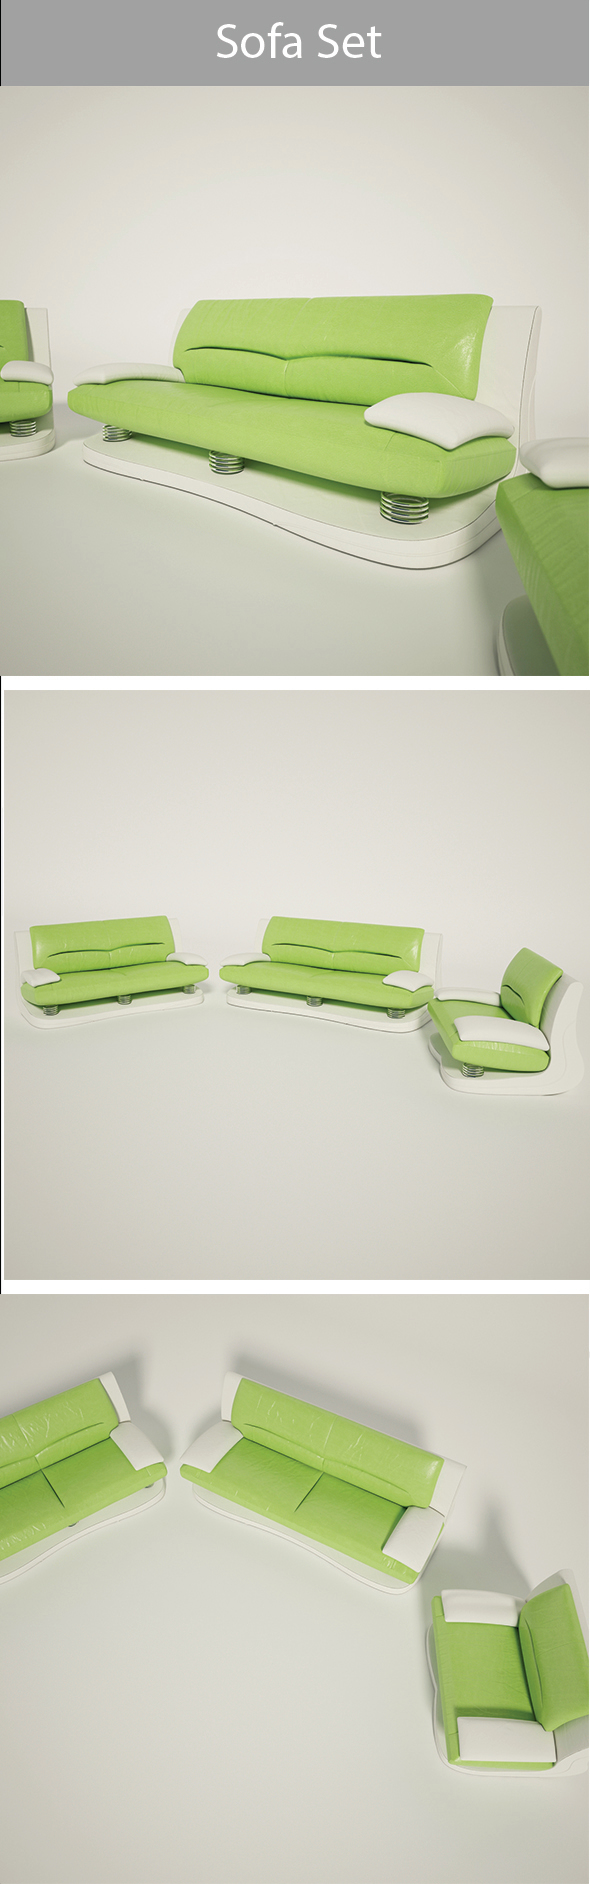 Sofa Set-02 - 3DOcean Item for Sale